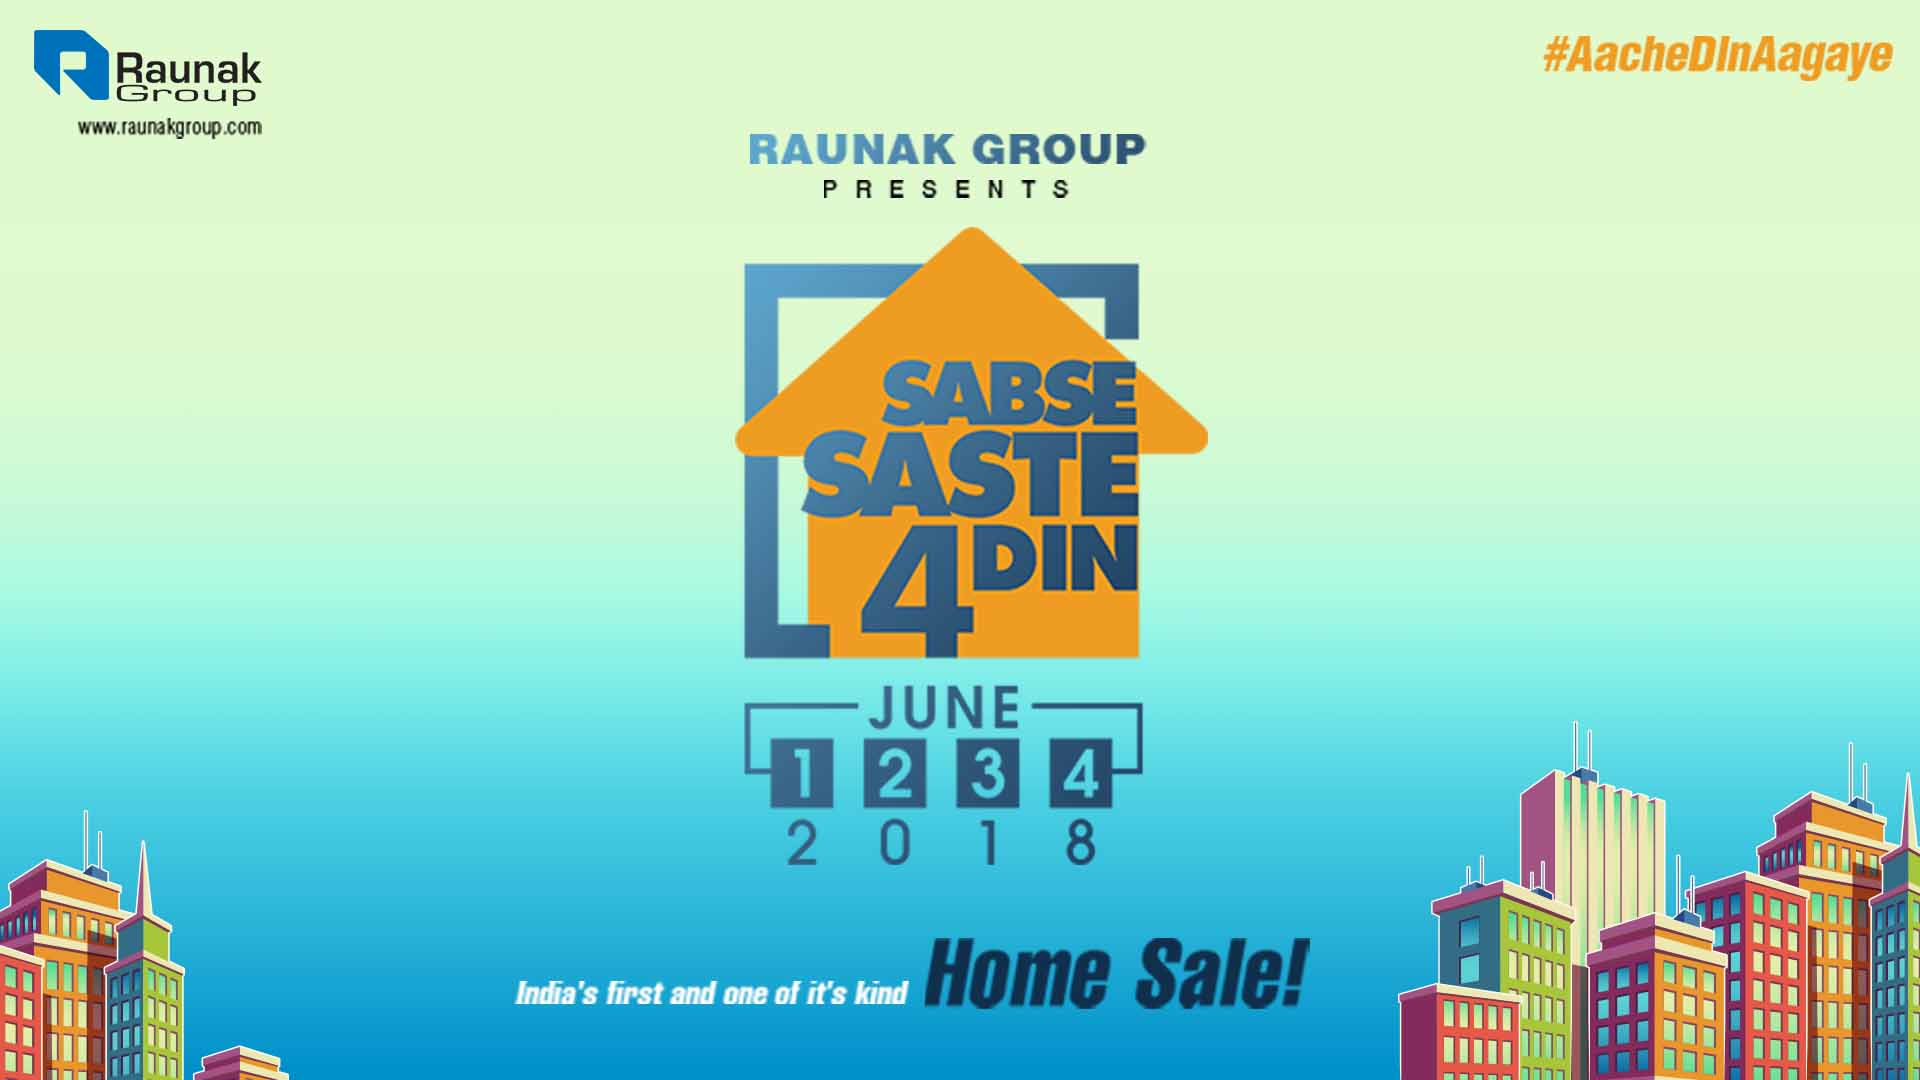 Raunak Group launches Sabse Saste 4 Din